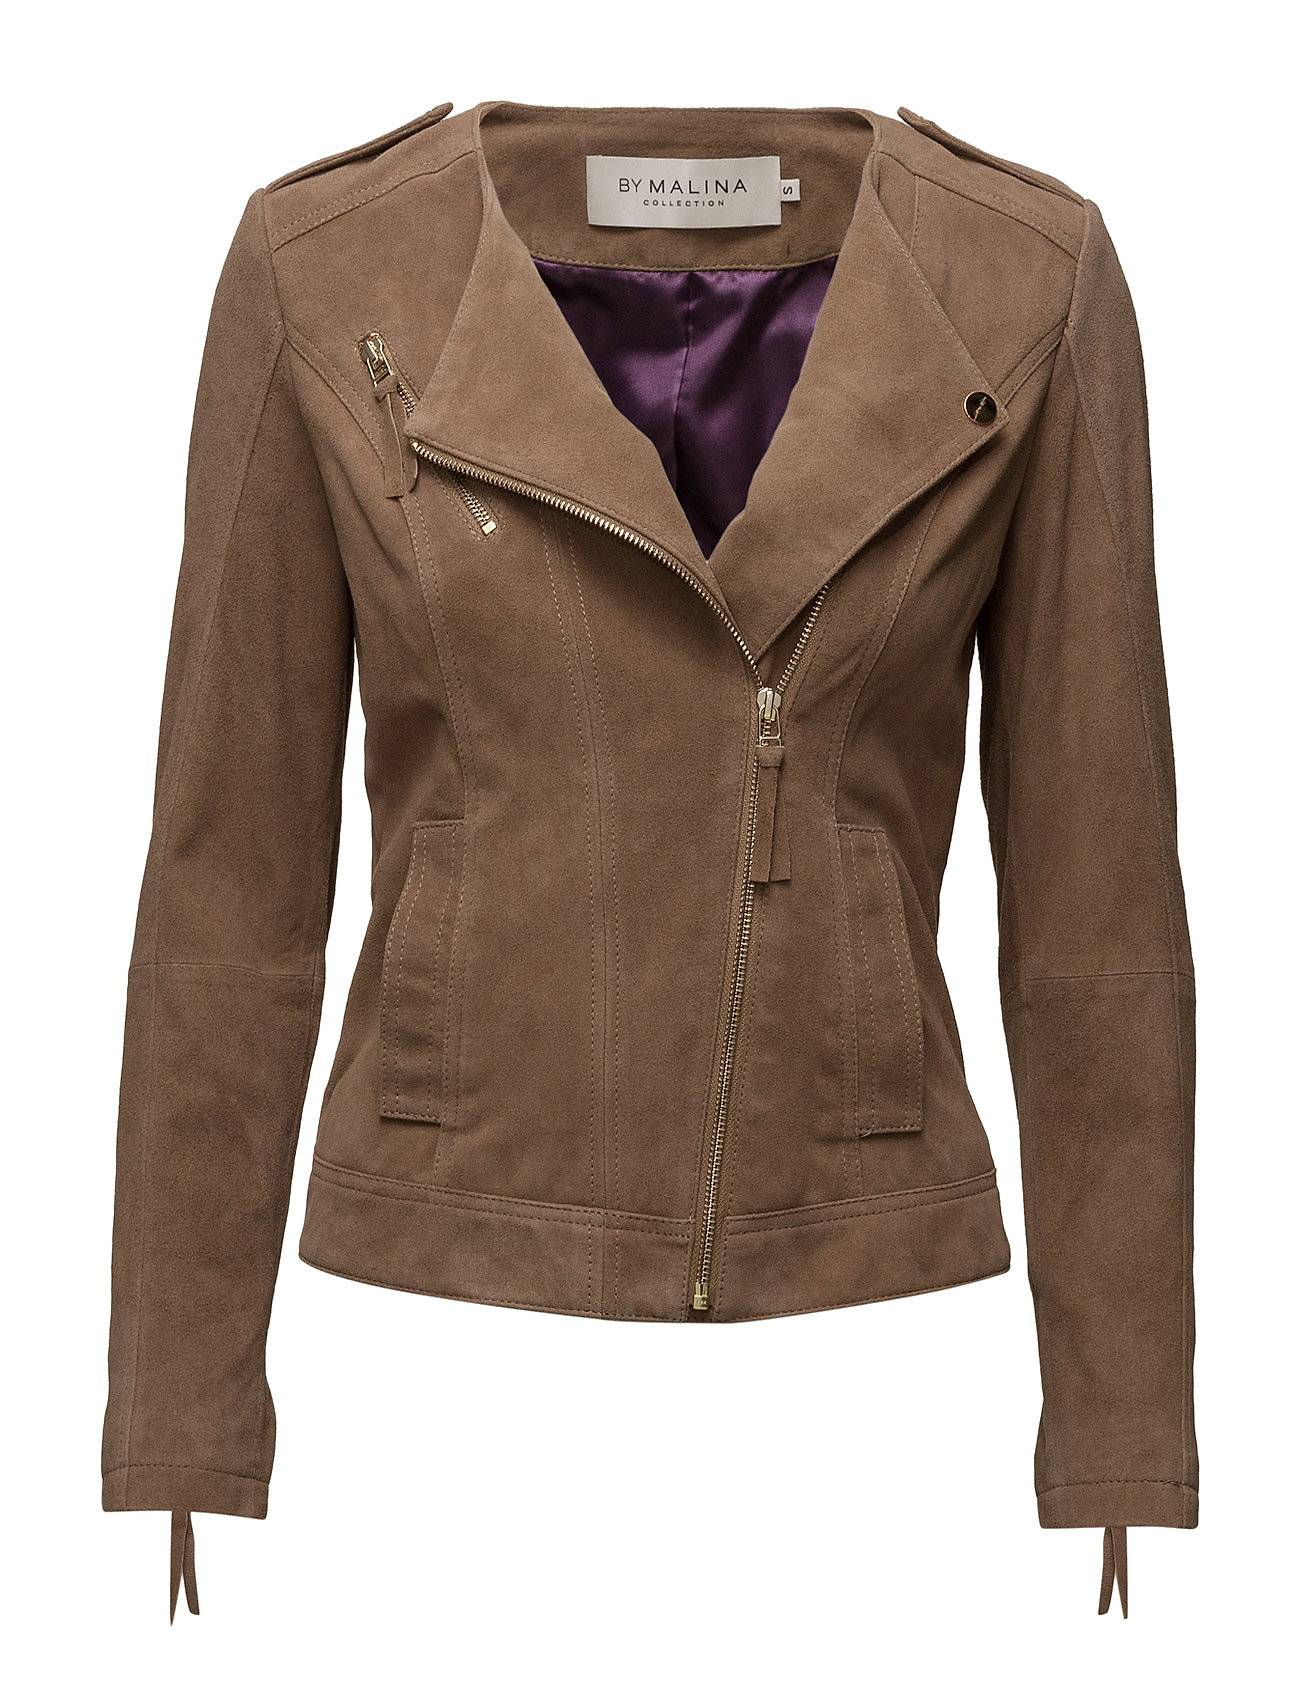 By Malina Chica Suede Jacket